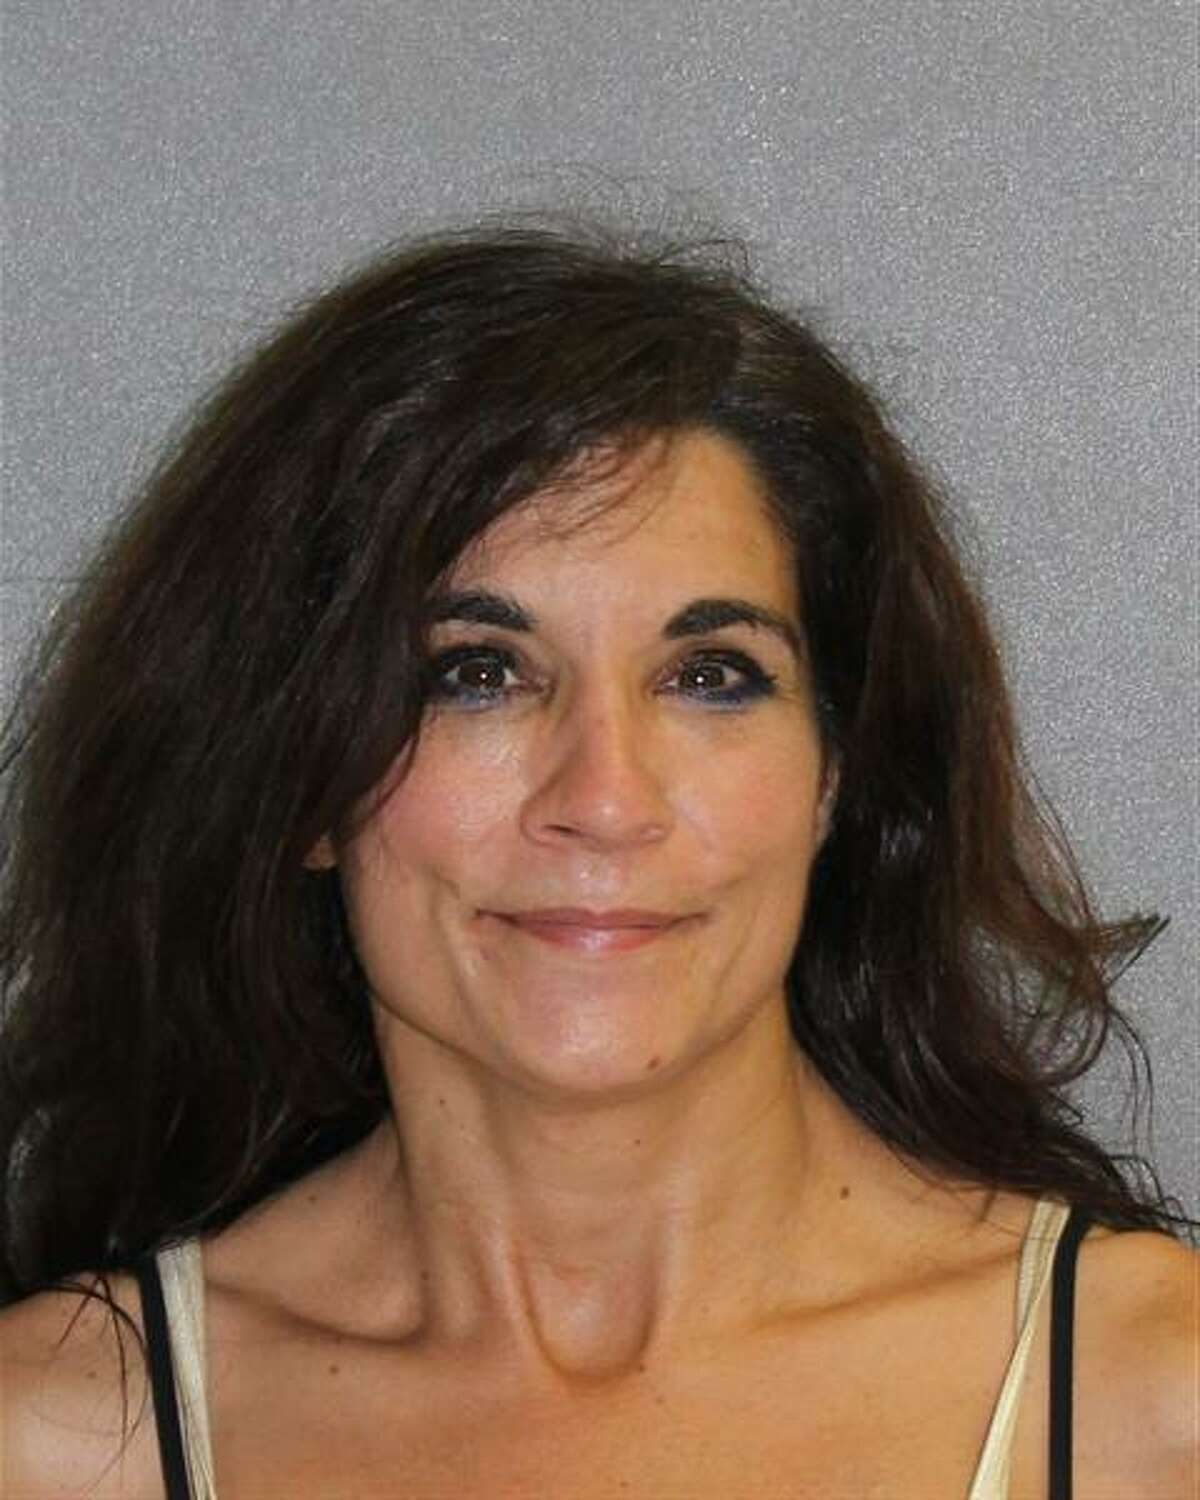 Linda Hadad, 43, was disbarred for inappropriate sexual and drug activity she admitted to participating in during her time as a public defender.